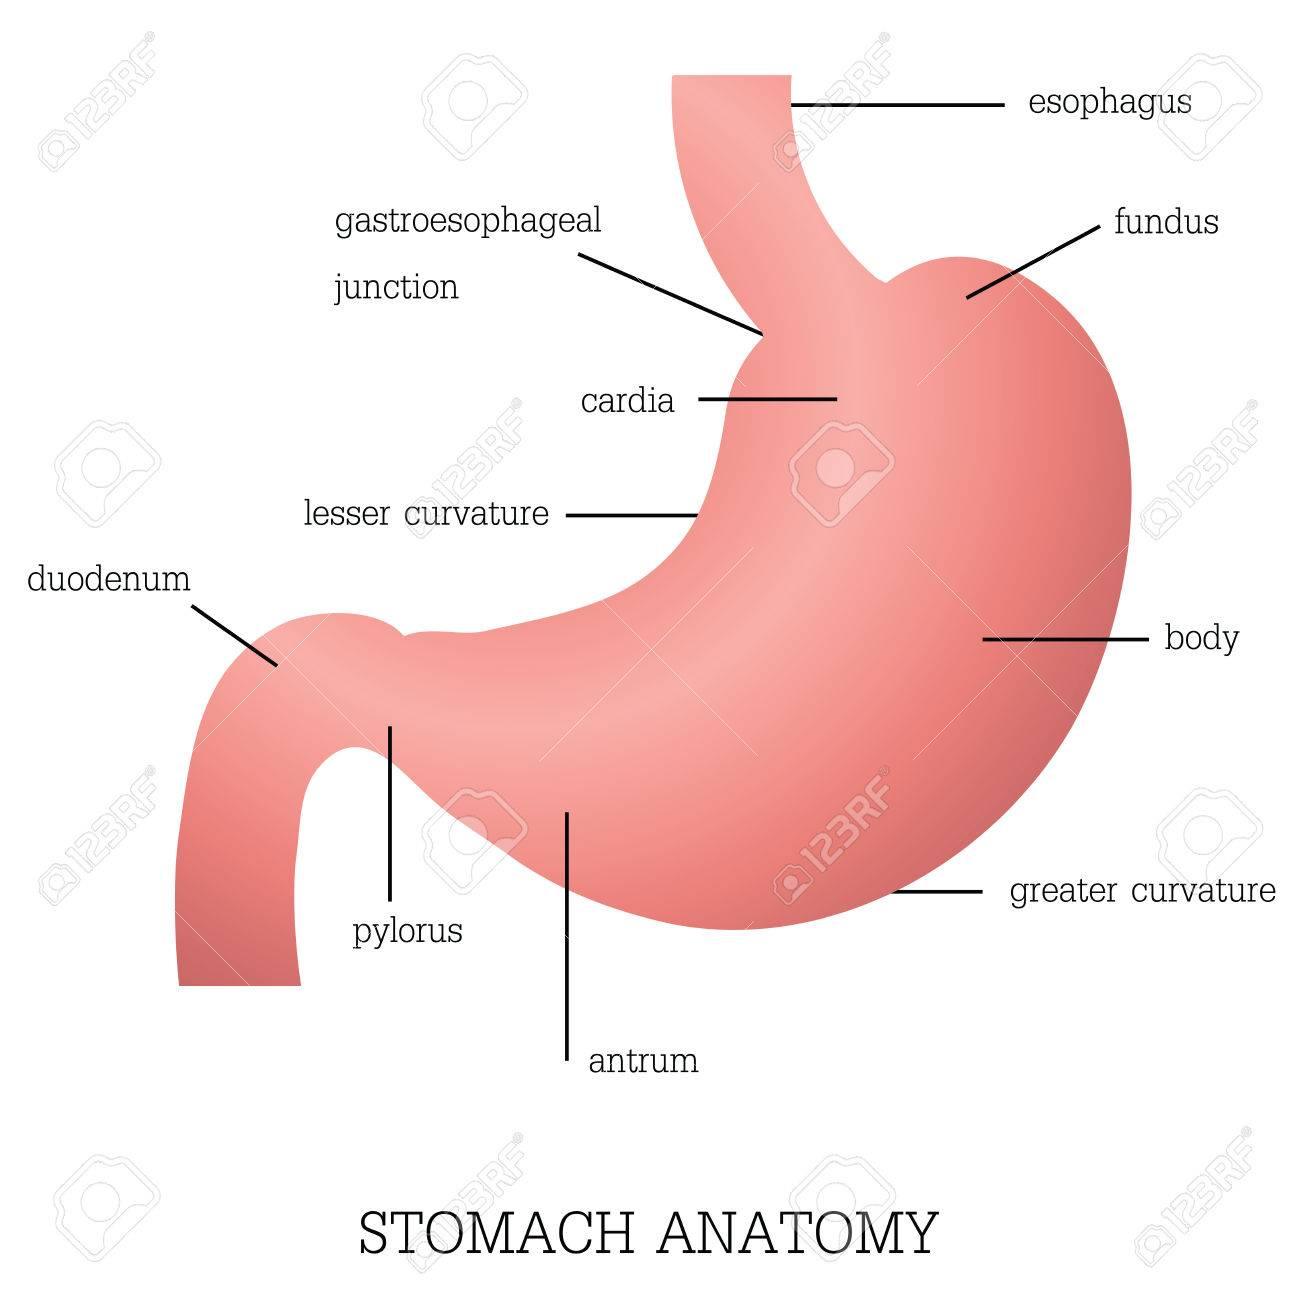 Structure And Function Of Stomach Anatomy System Isolated On ...